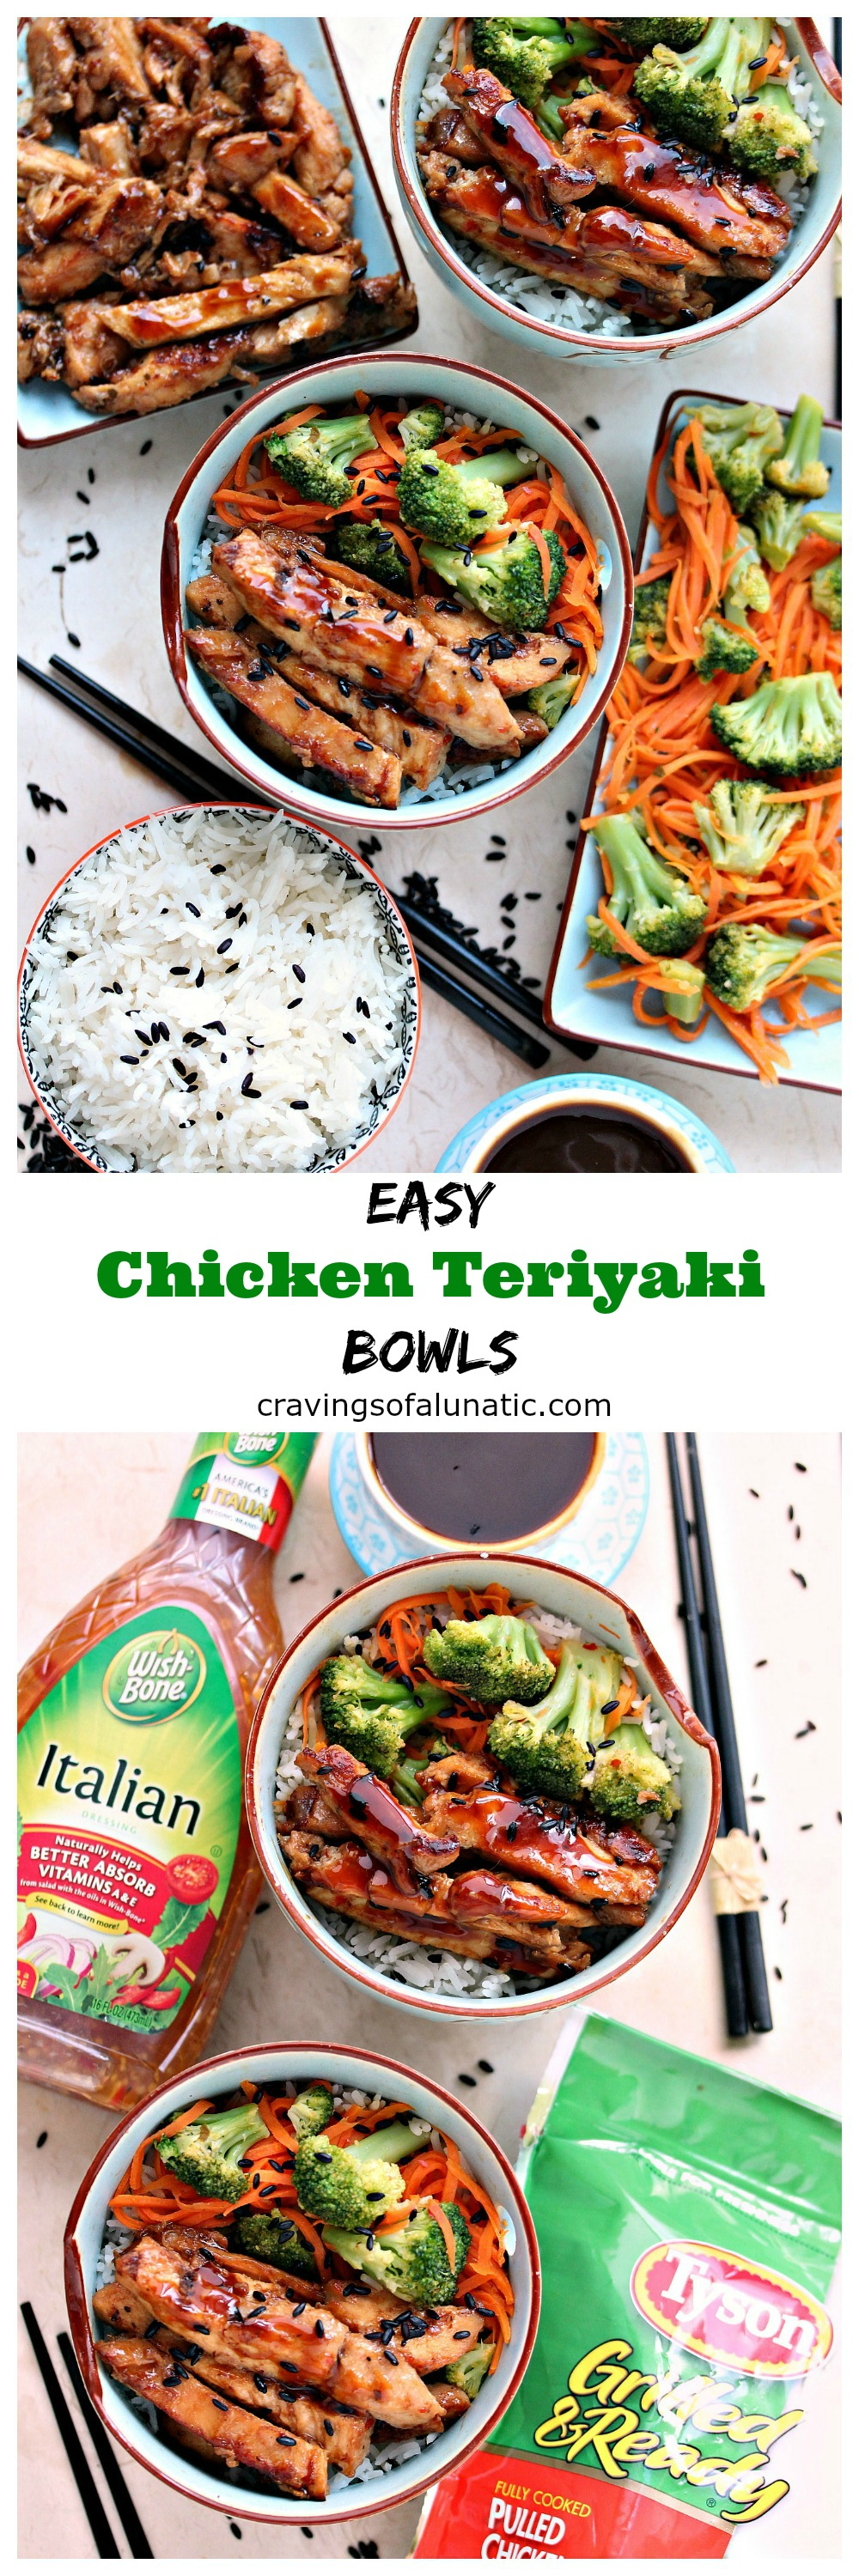 Easy Teriyaki Bowls from cravingsofalunatic.com- This recipe is incredibly quick and easy. It's the perfect way to get more vegetables in your diet without sacrificing taste and creativity. We serve ours over rice, but you can serve it over noodles, bean sprouts, or a fabulous salad. (@CravingsLunatic)